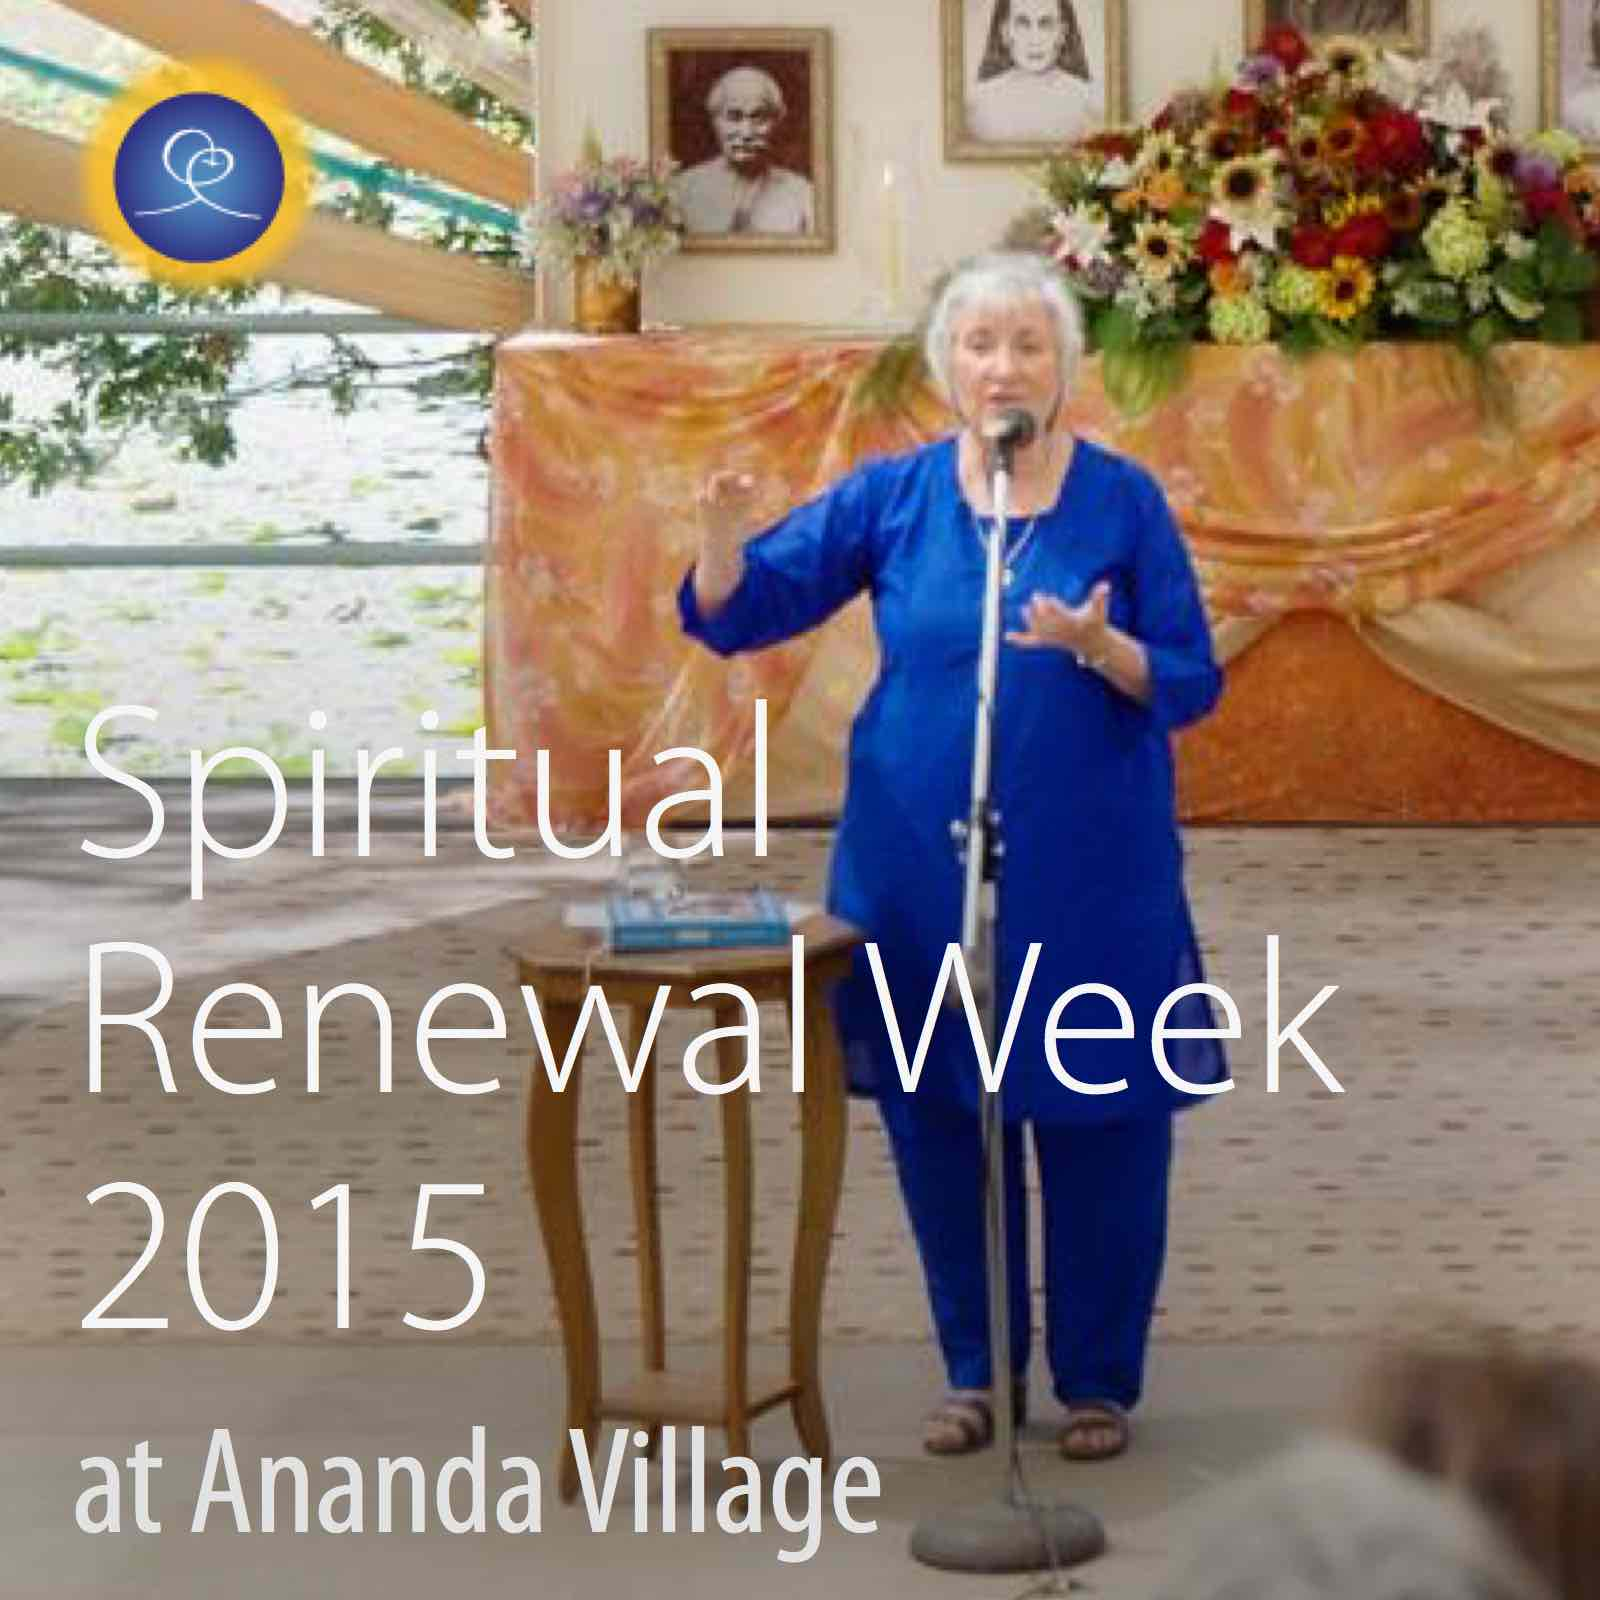 Spiritual Renewal Week, 2015